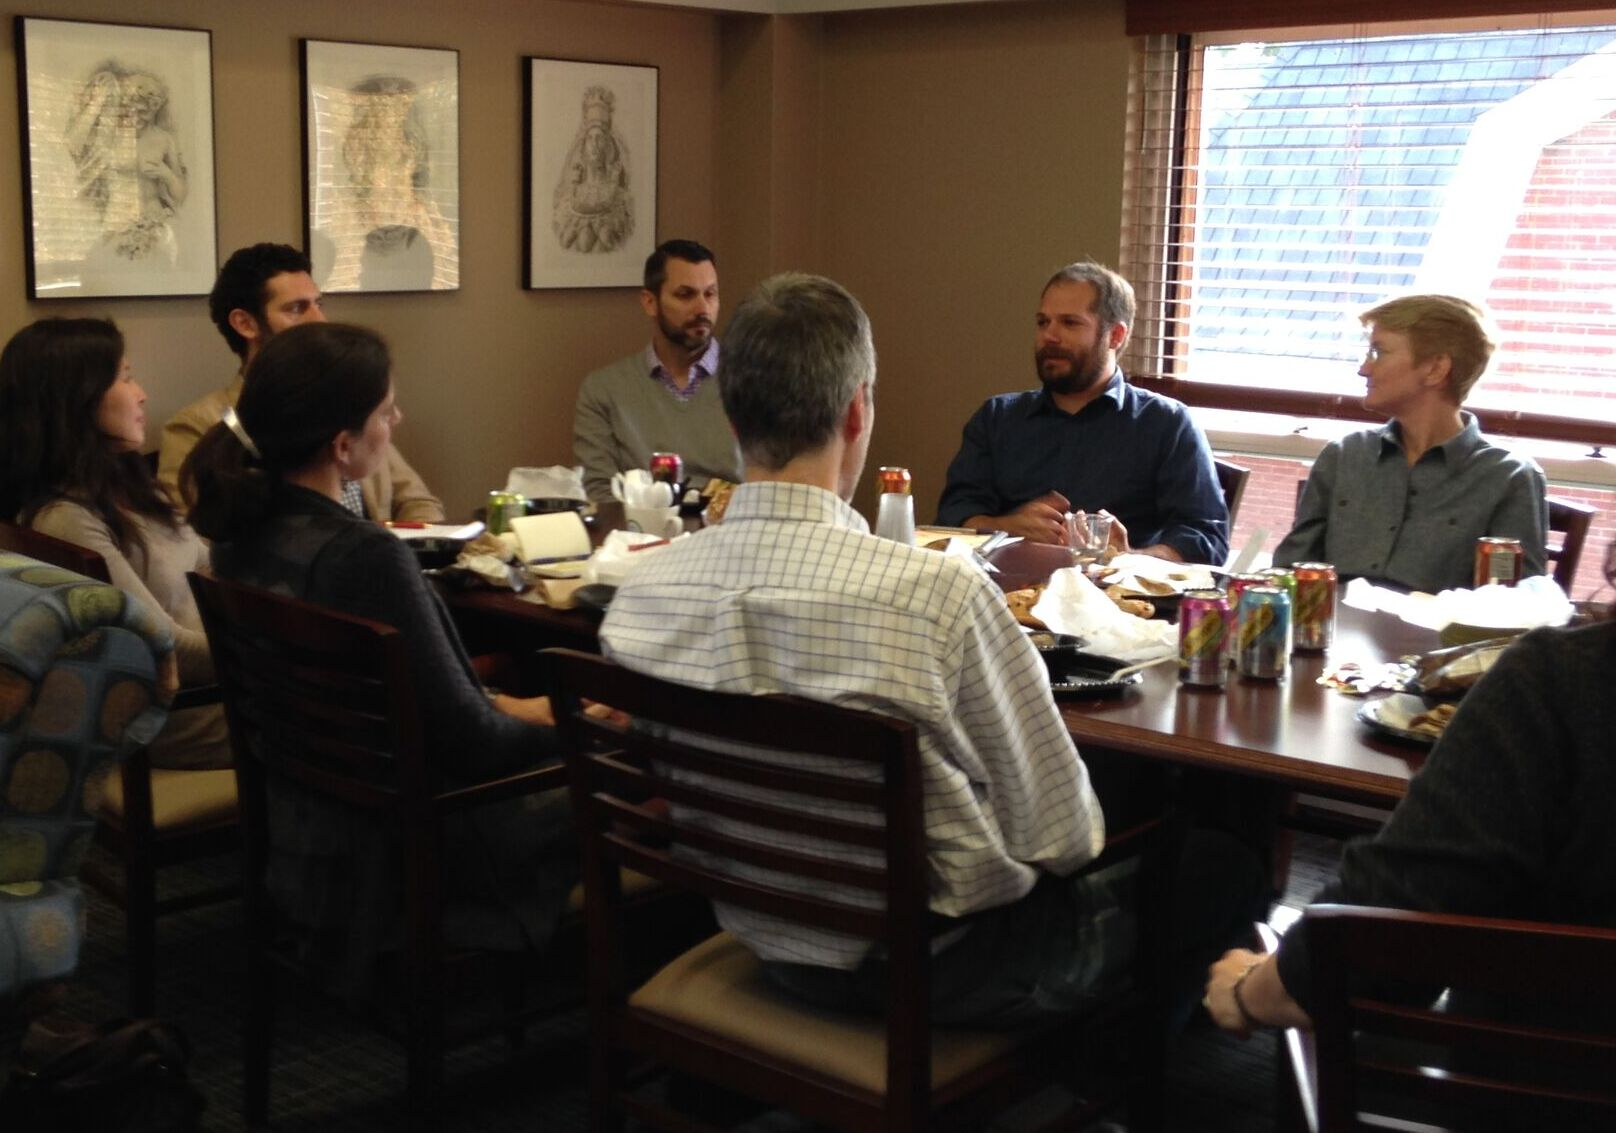 A small  faculty discussion group uses the conference table space in the Faculty Center.